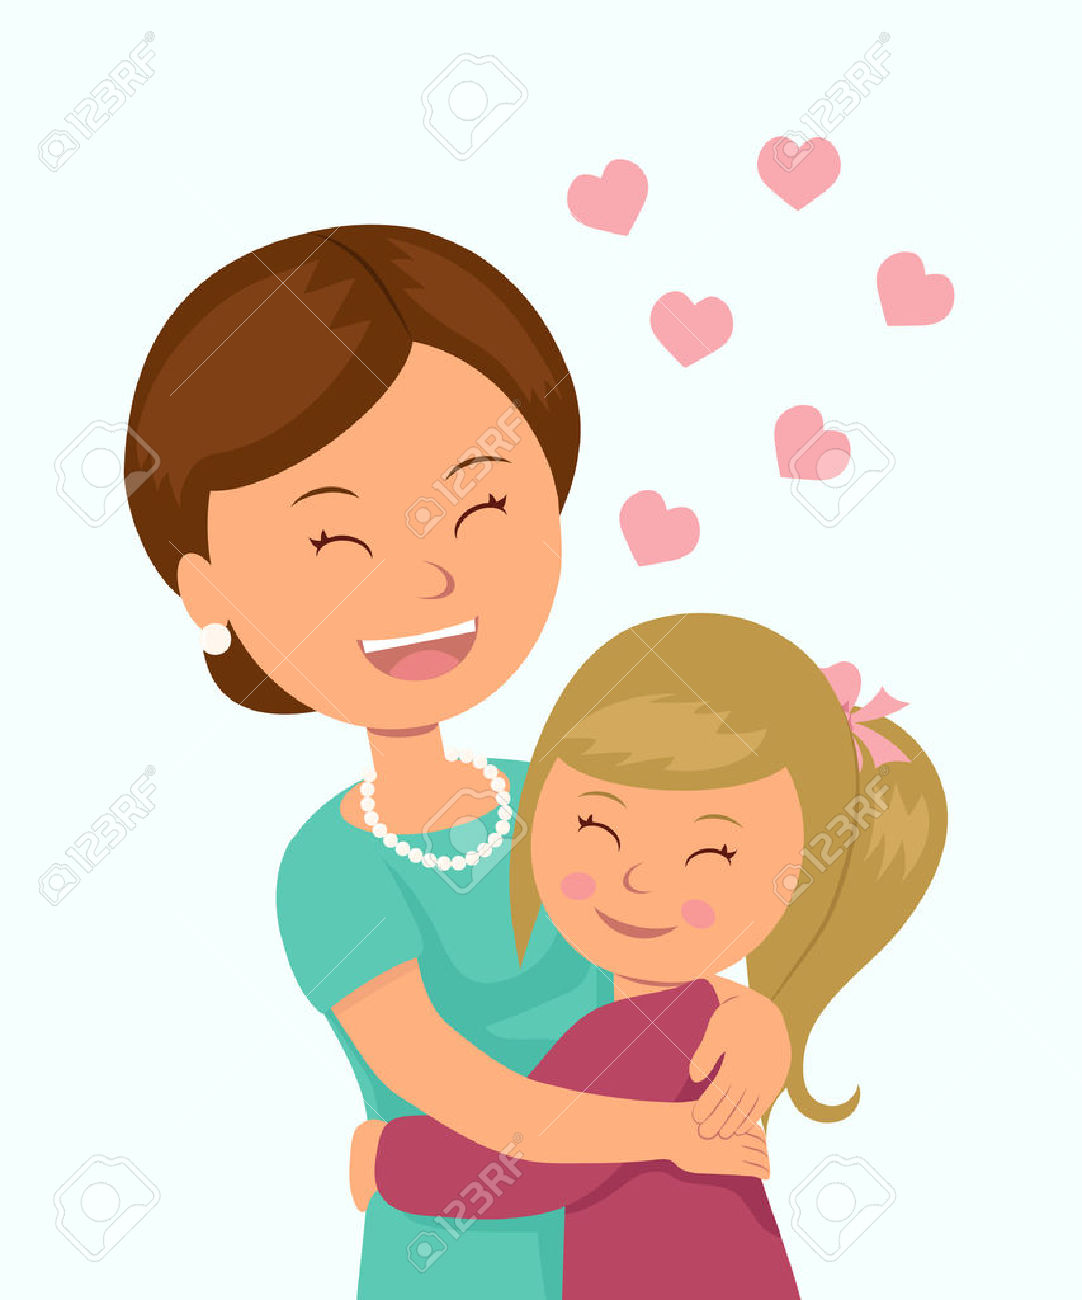 Cliparts free download best. Mother clipart mother daughter relationship